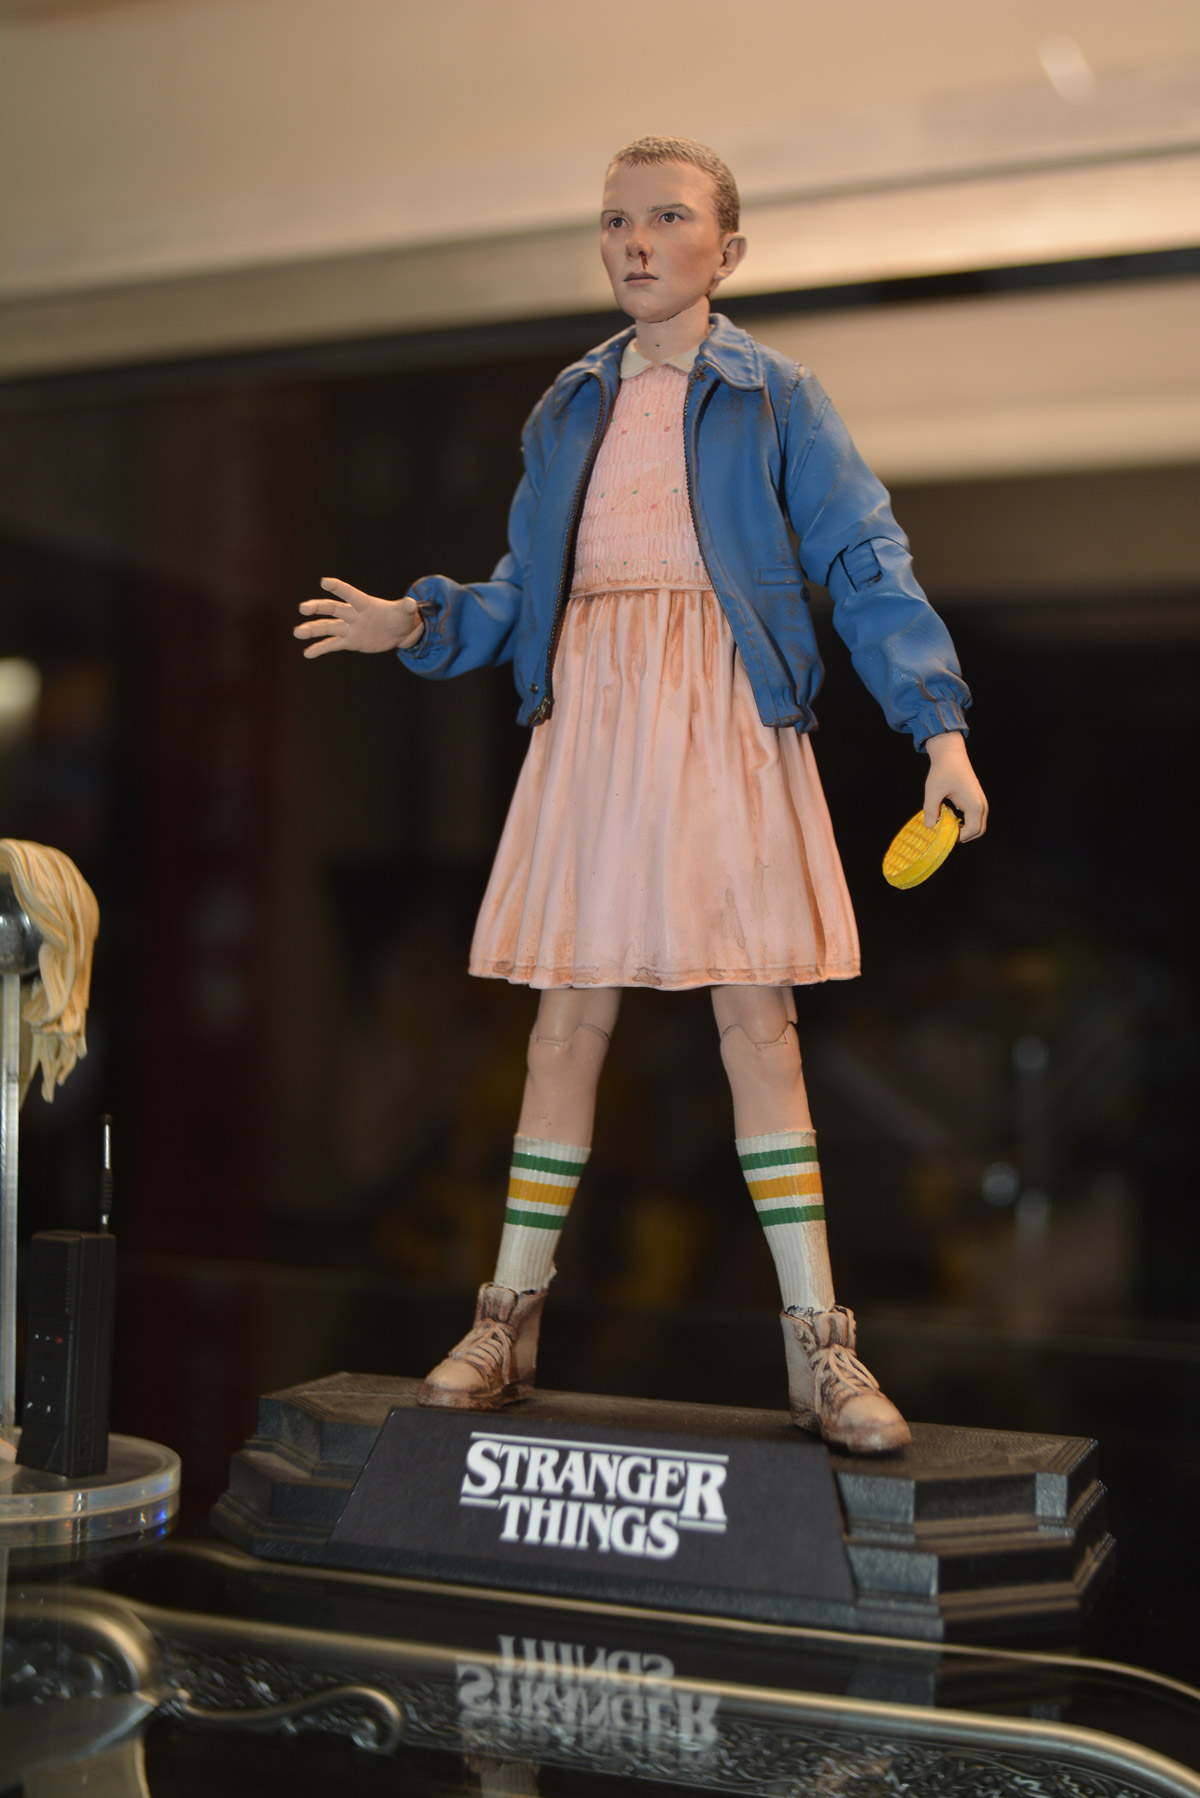 Stranger Things Toys : Stranger things figures debut at sdcc previews world